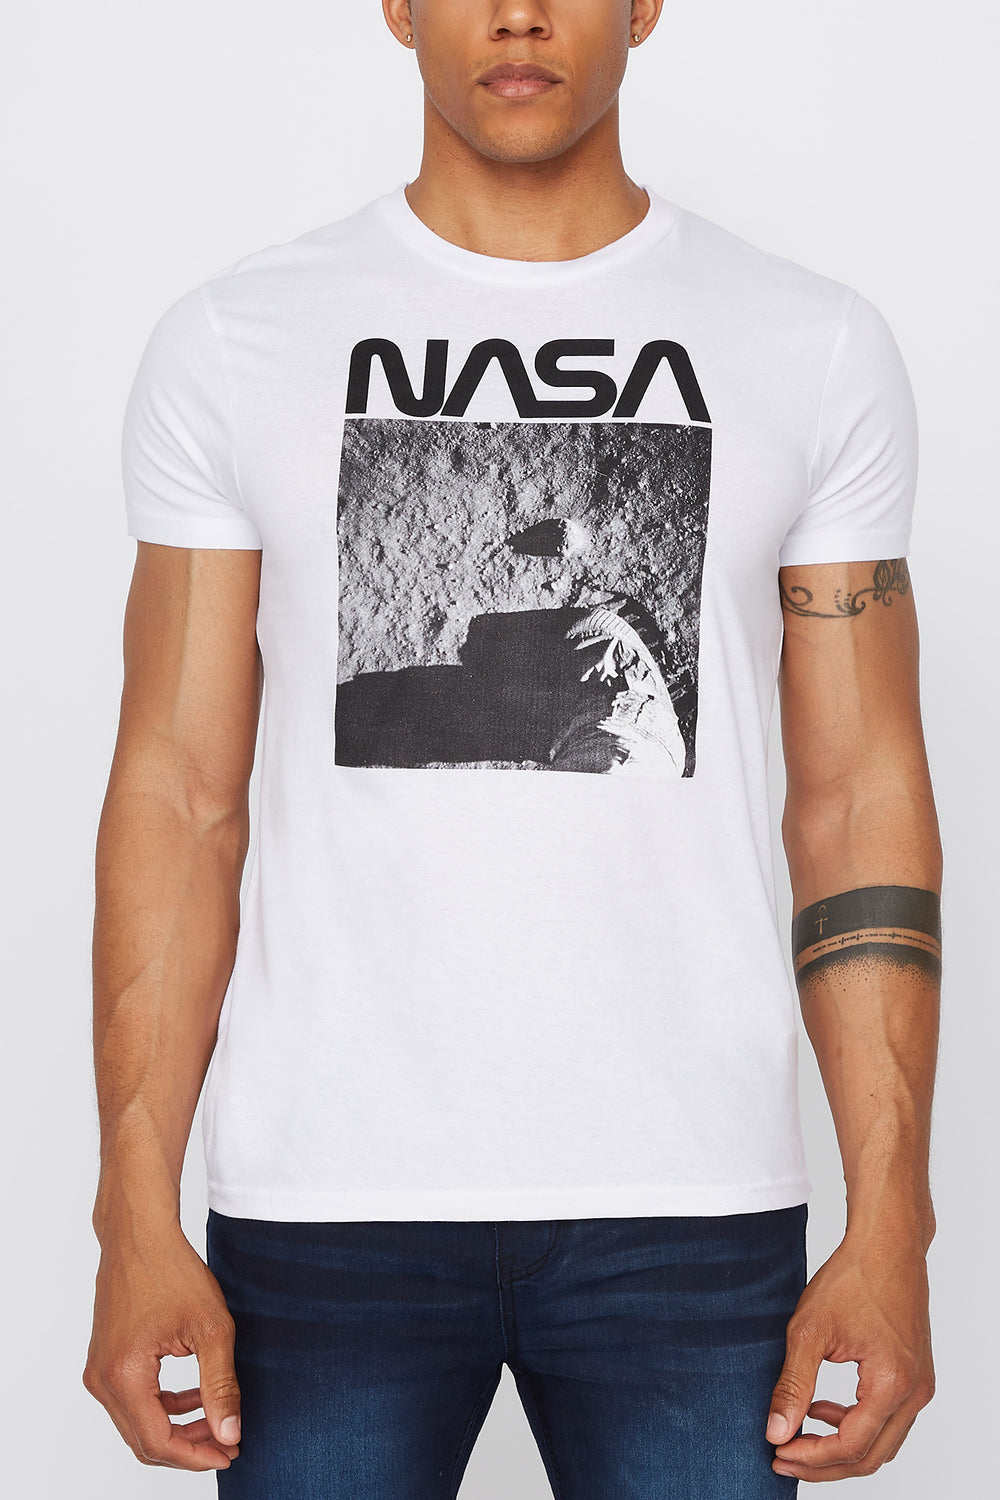 T-Shirt NASA Homme Blanc